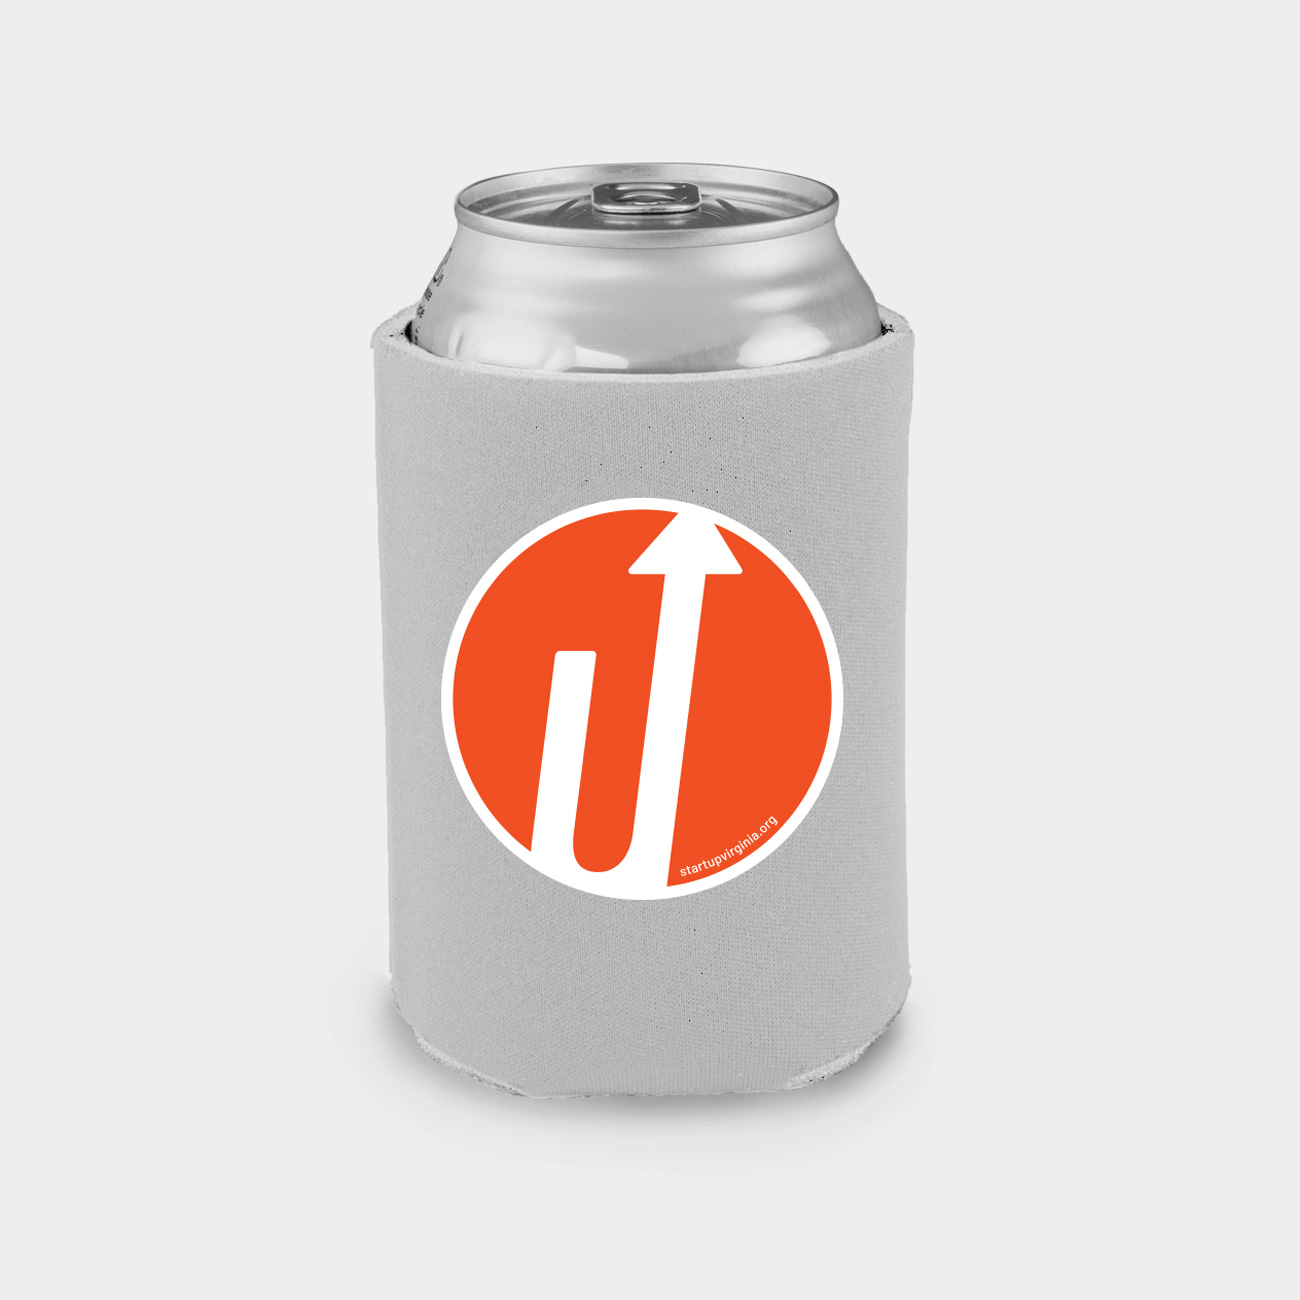 Beer koozie with logo